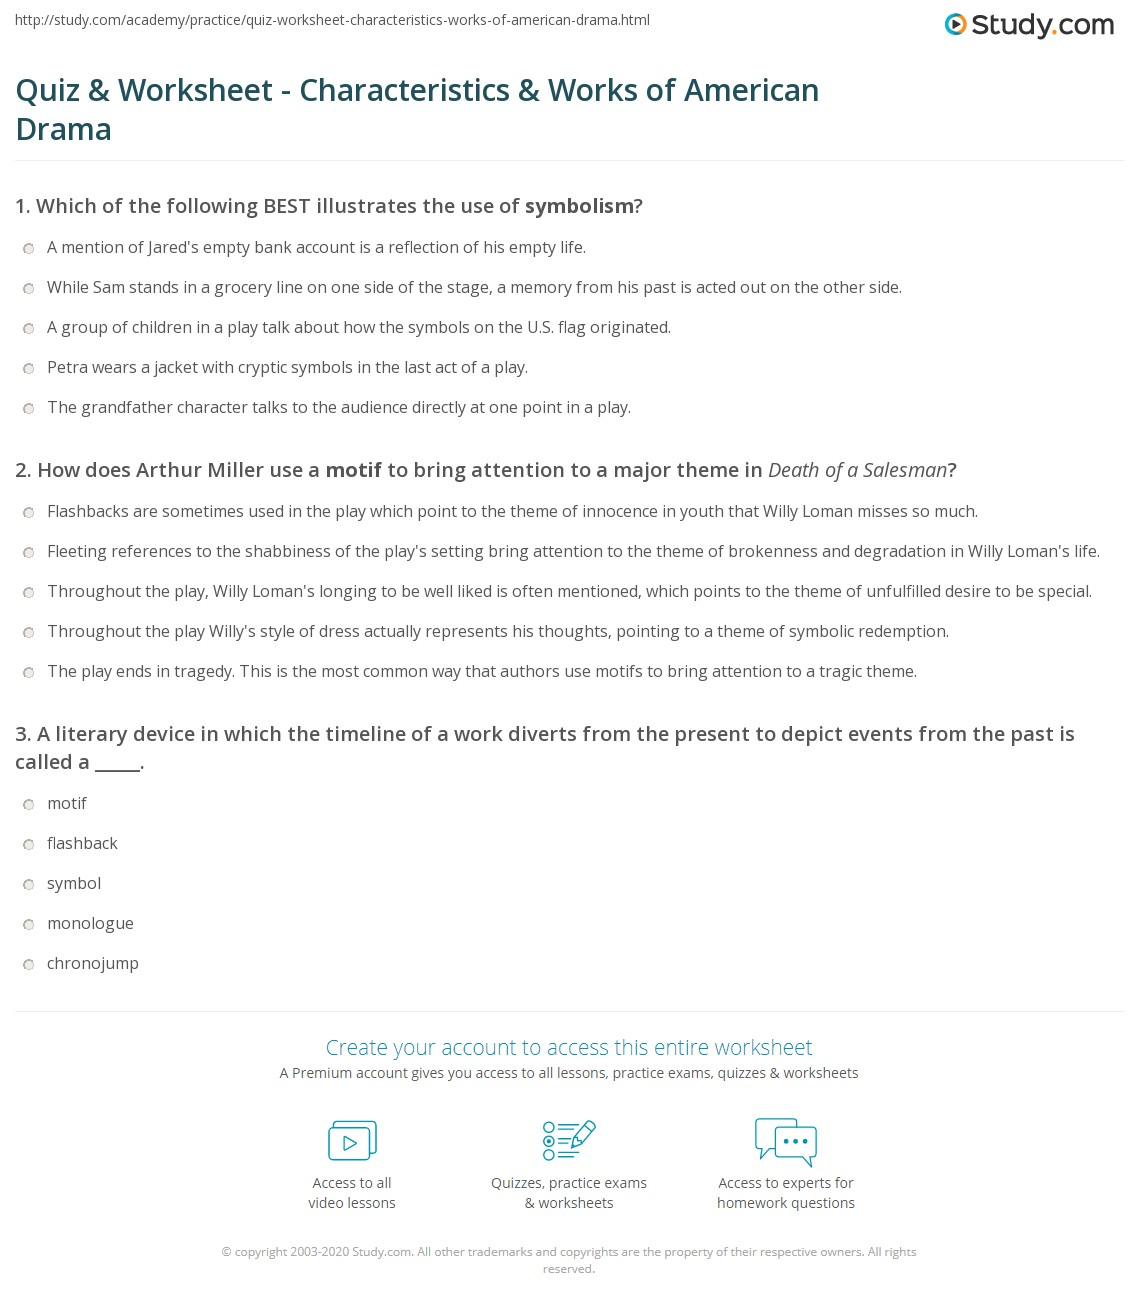 worksheet Cryptic Quiz Worksheet Answers cool quiz amp worksheet using adjectival adverbial phrases a and an cryptic answers free worksheets library download